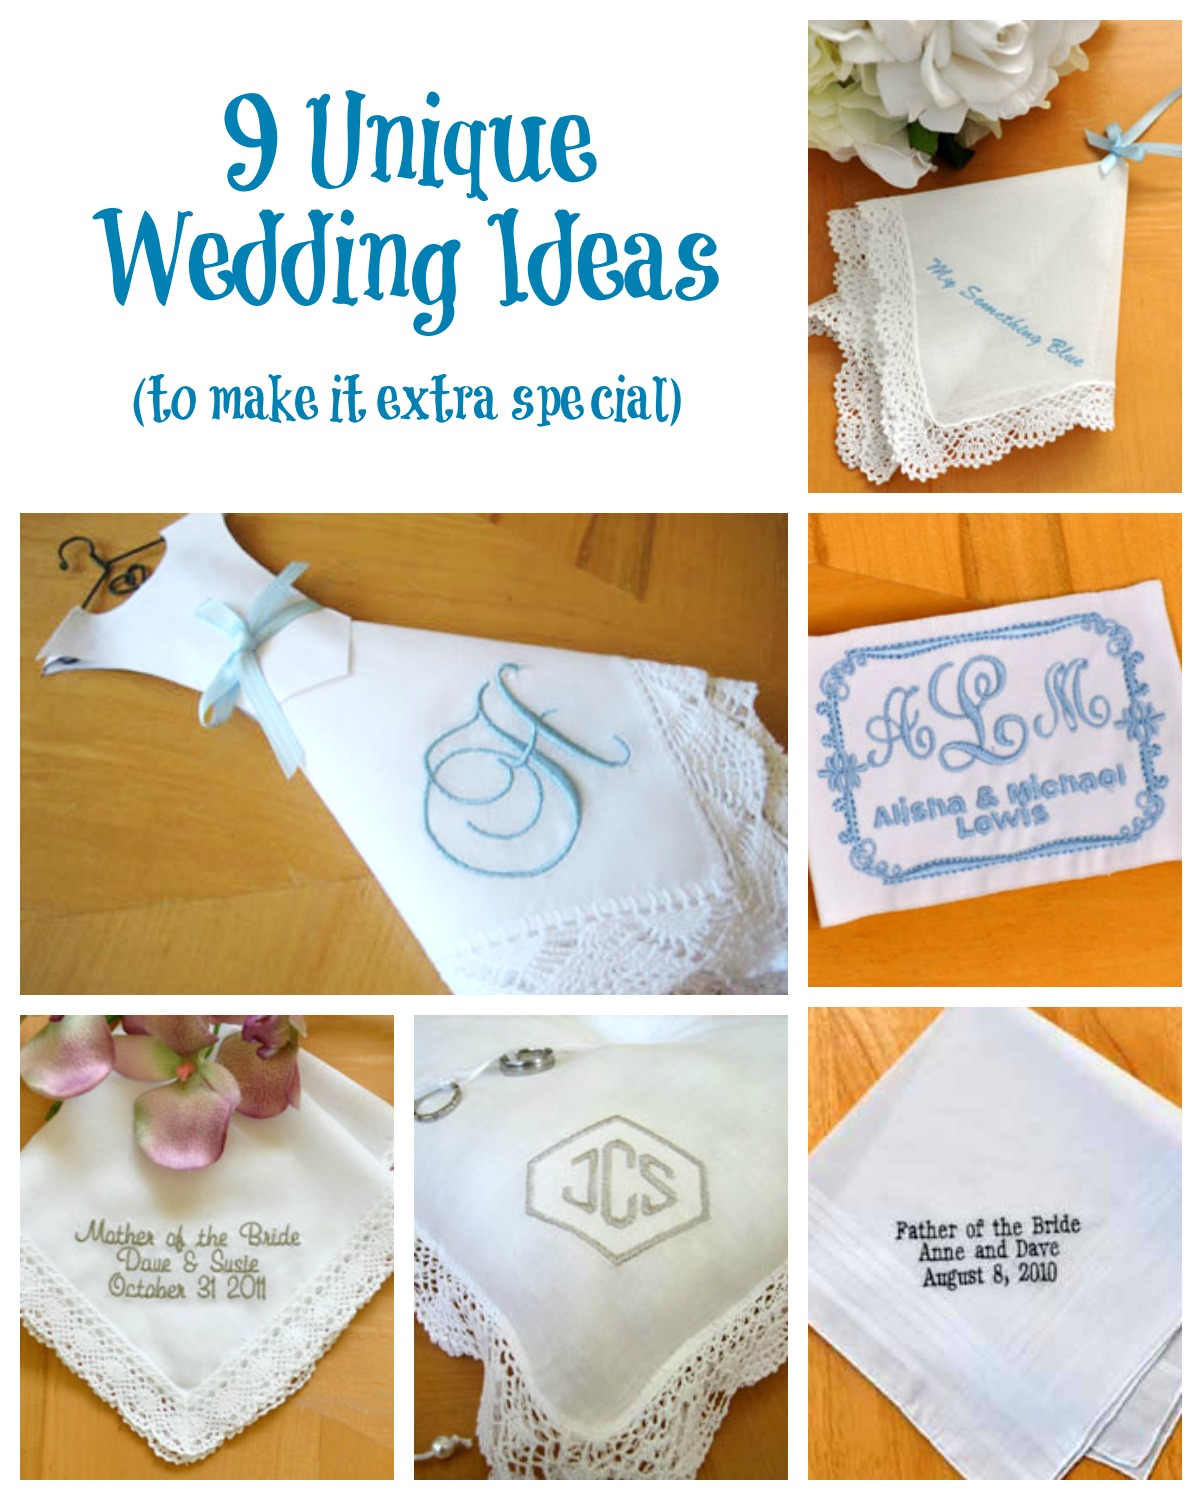 Unique Fun Wedding Ideas: 9 Unique Wedding Ideas To Make Your Wedding Extra Special